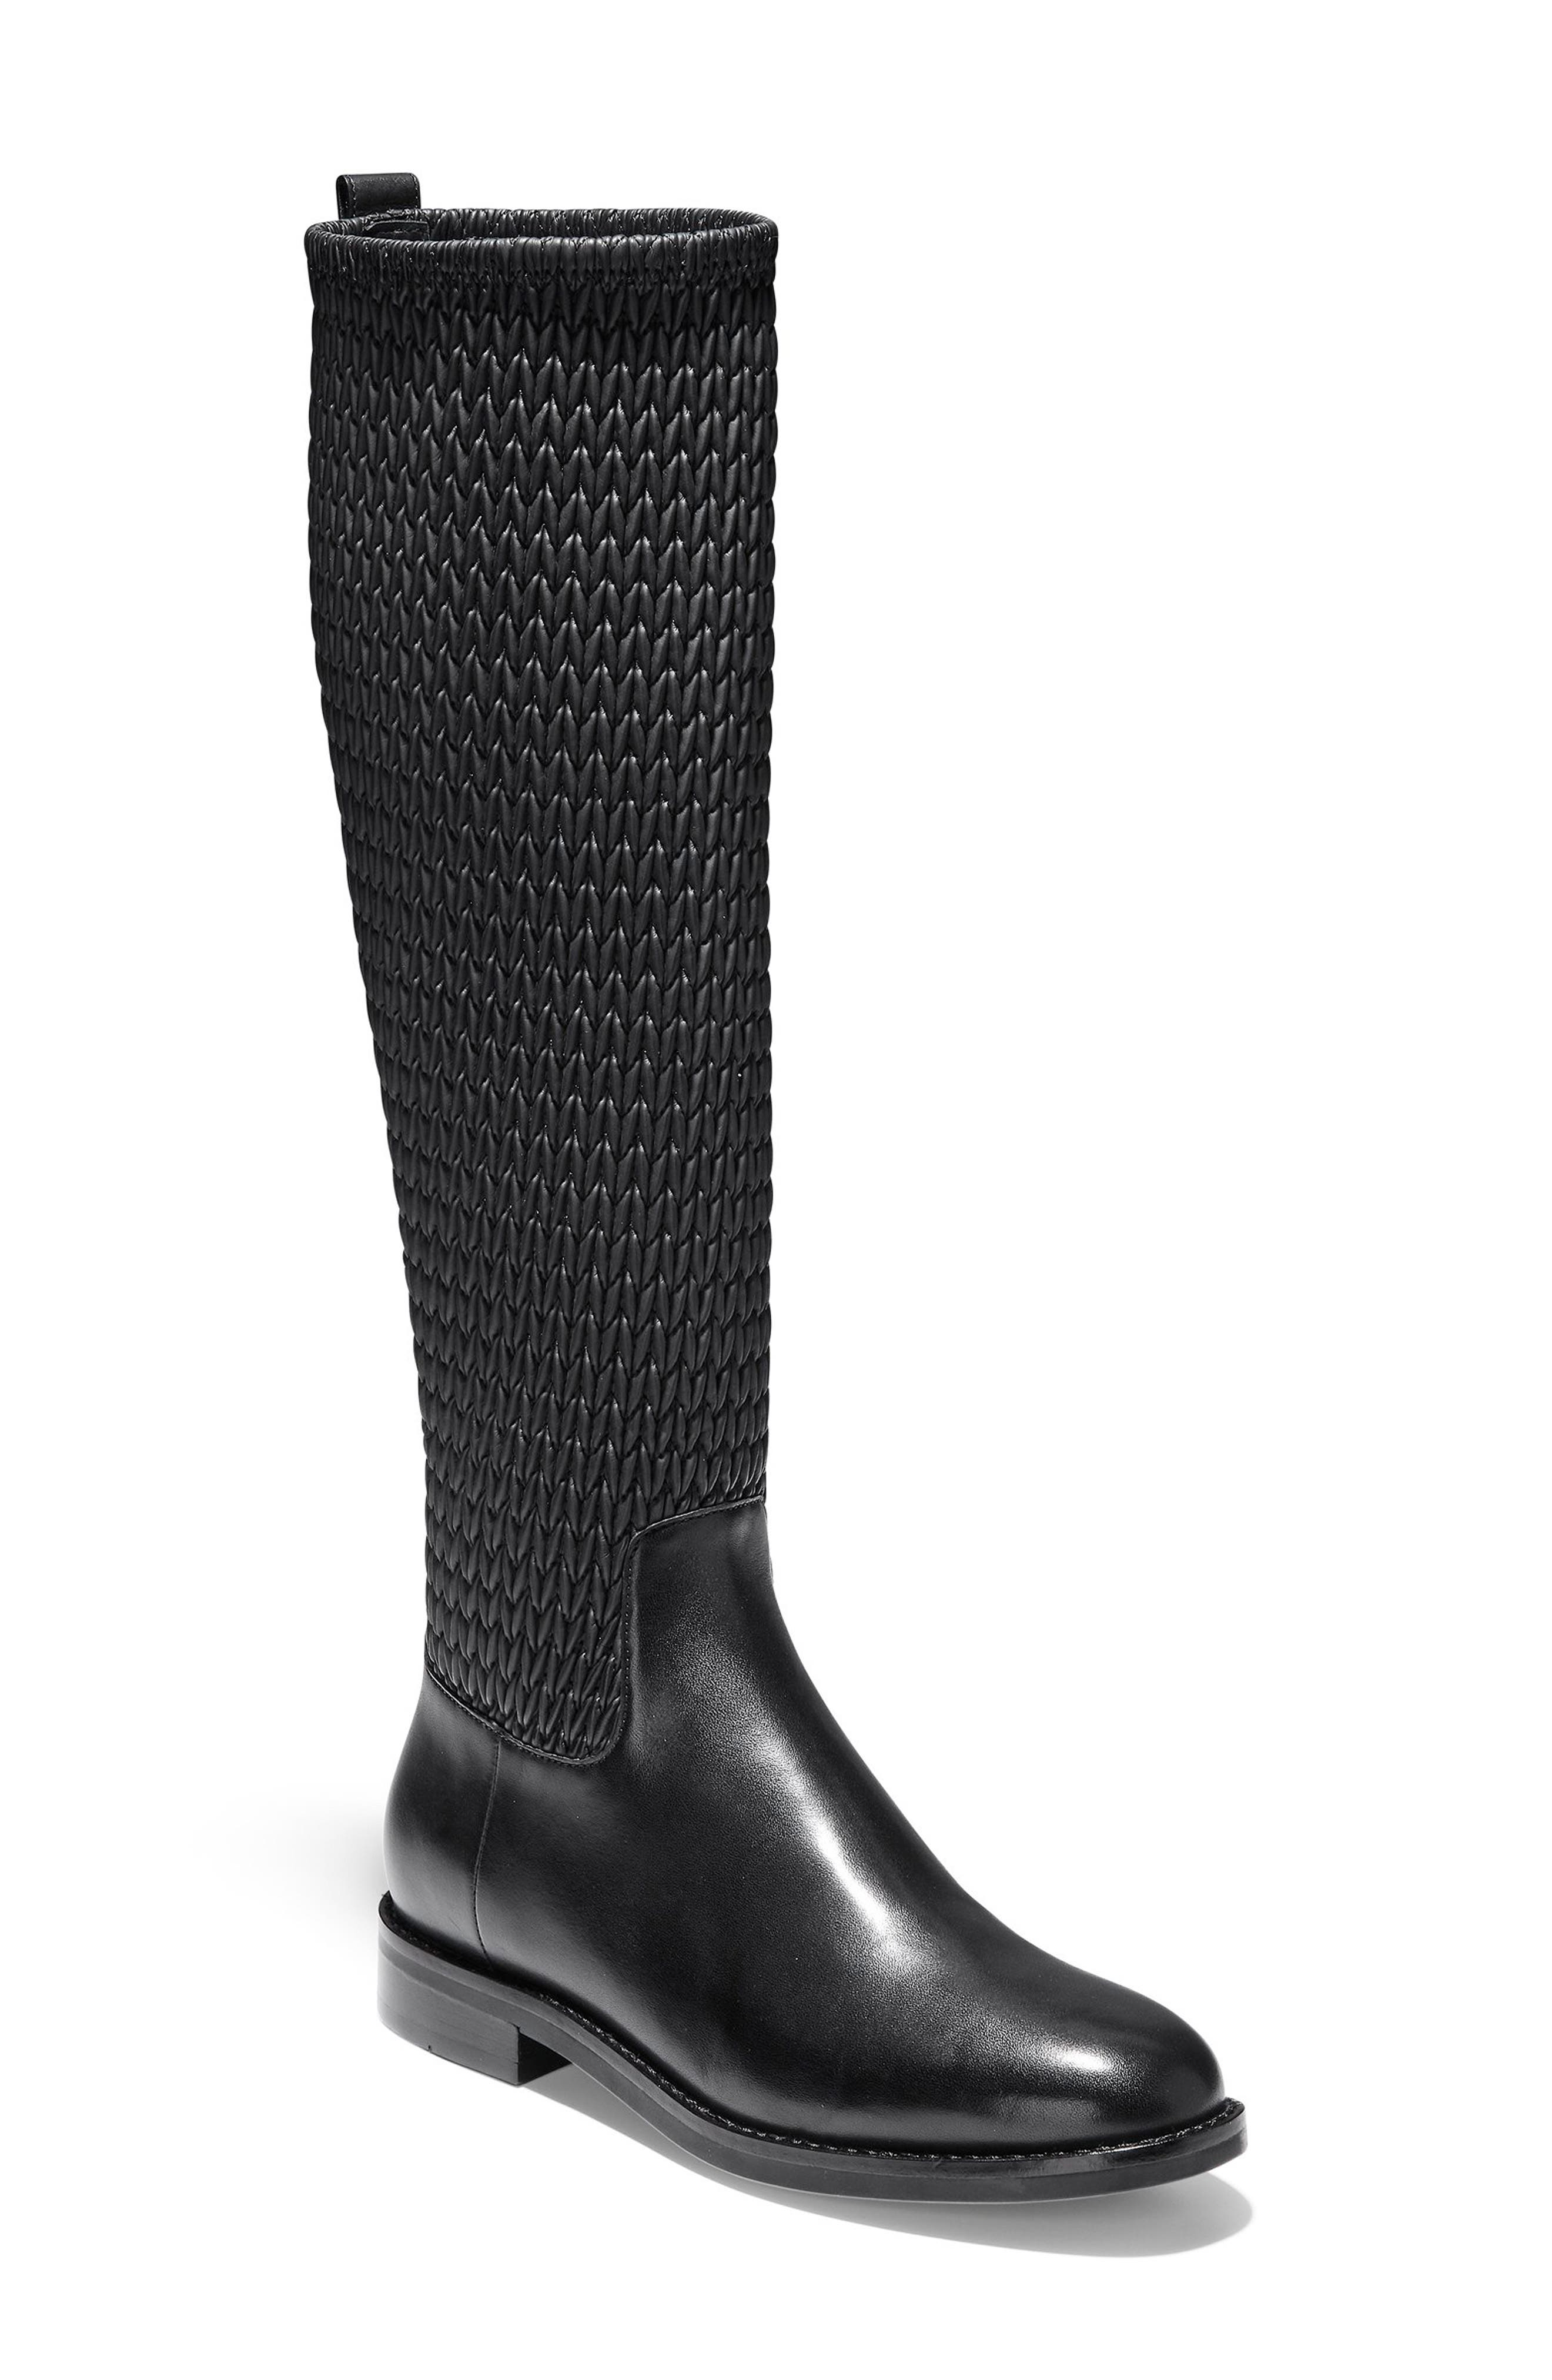 COLE HAAN Lexi Grand Knee High Stretch Boot, Main, color, BLACK LEATHER